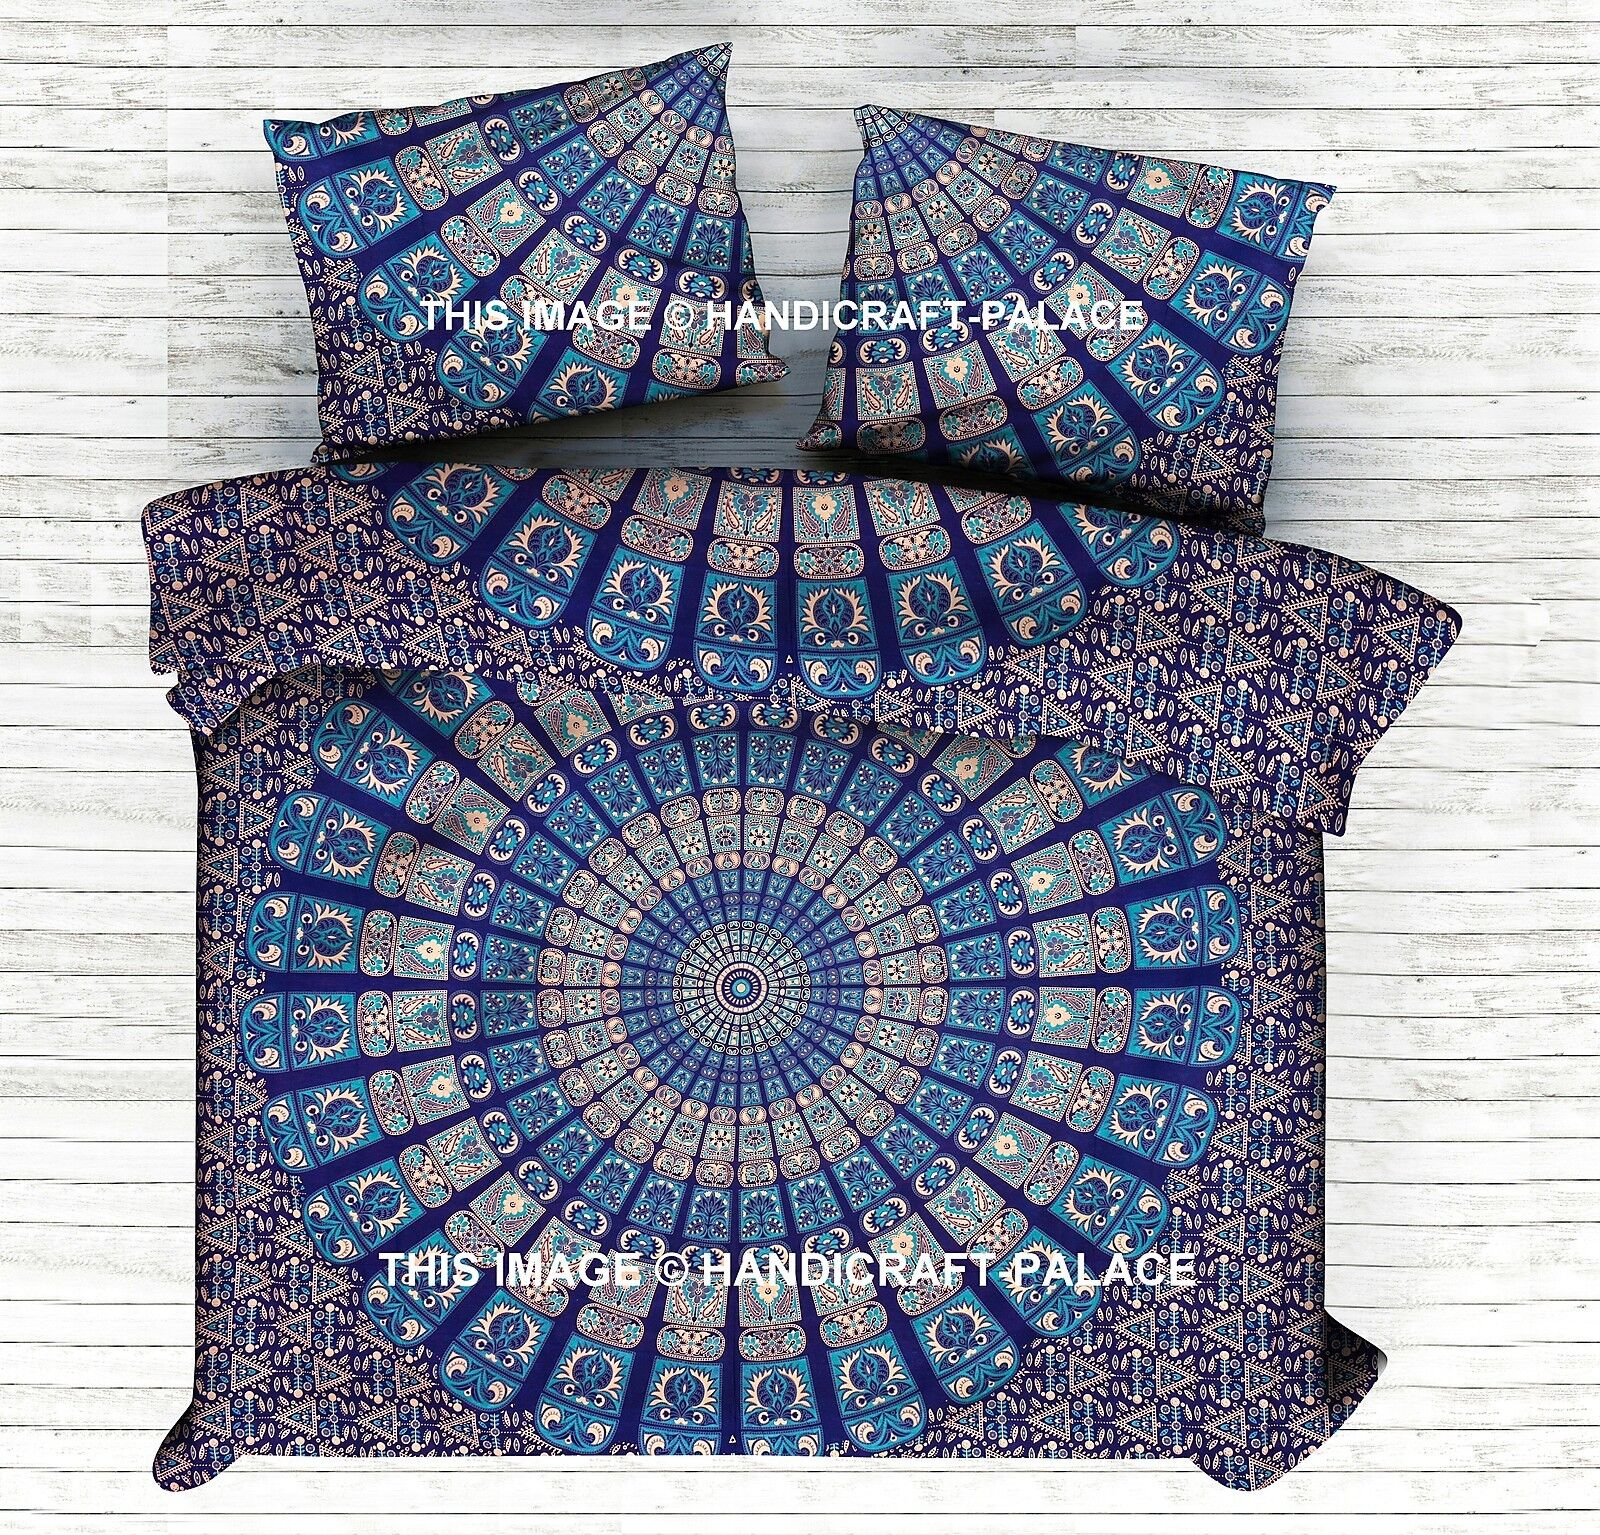 Mandala Indian Queen Bed Sheet Pillow Bedspread Cotton Bed Cover Ethnic Bohemian